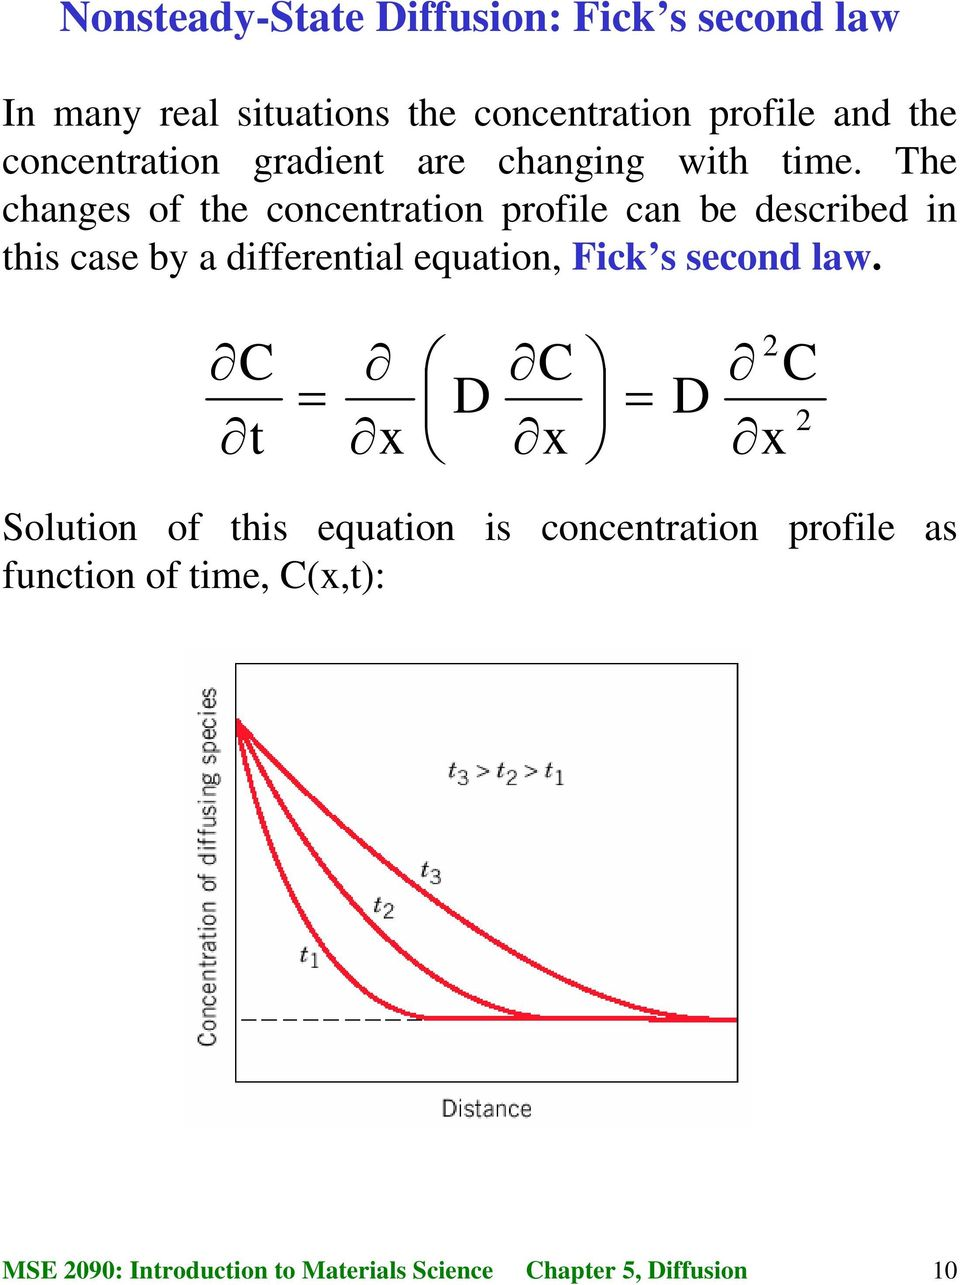 The changes of the concentration profile can be described in this case by a differential